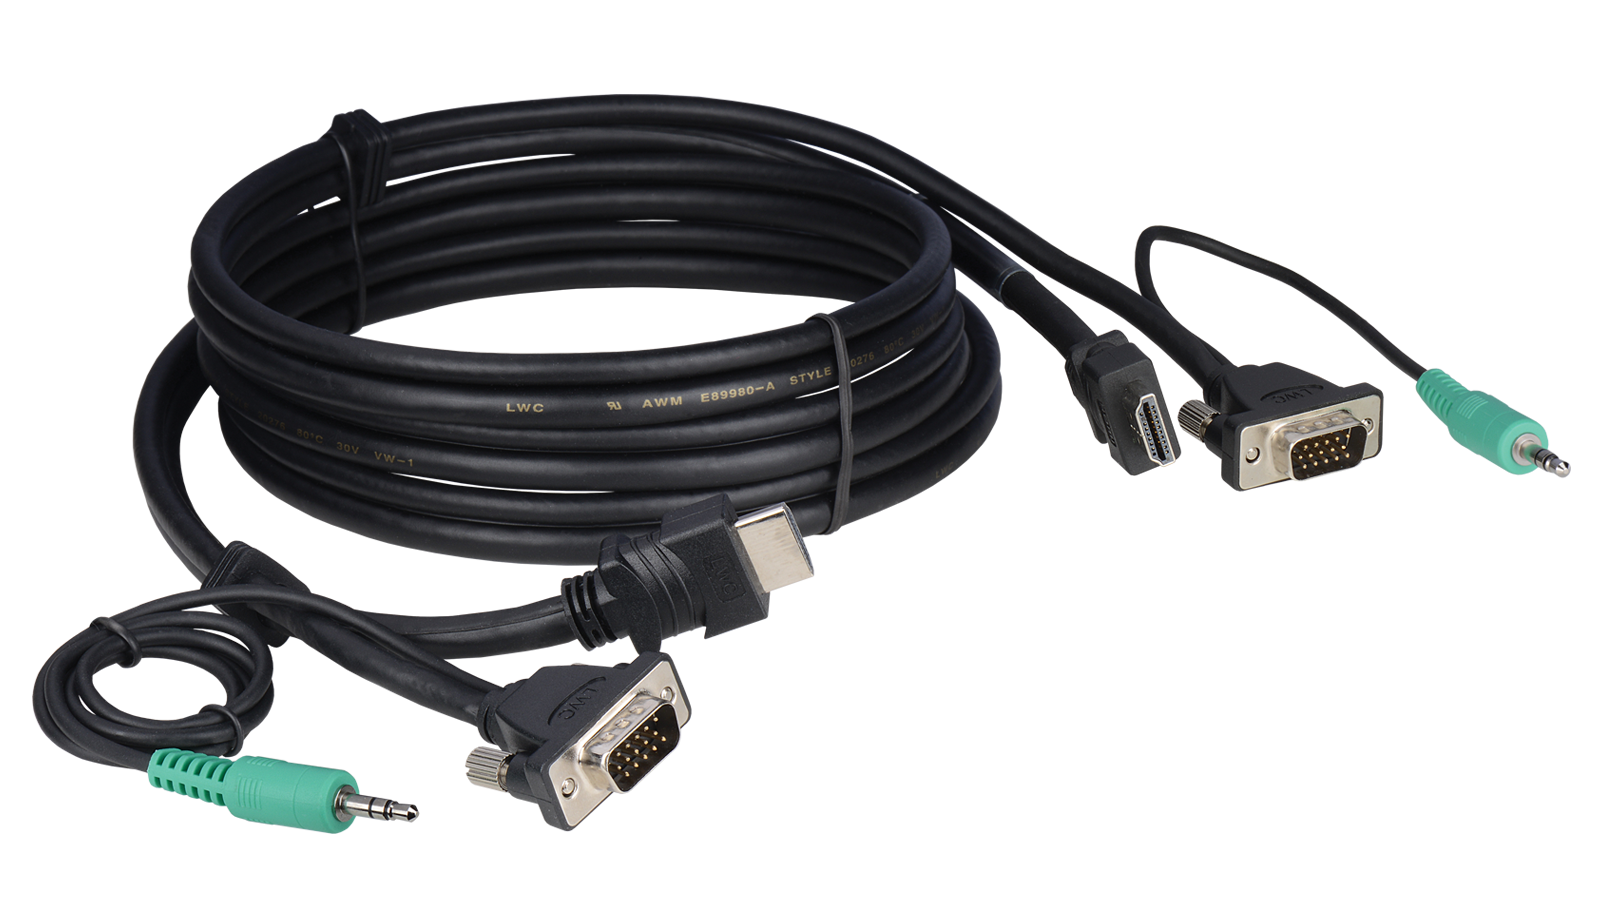 E-HDVAM-M-06 - Tabletop HDMI, VGA and Audio hybrid cables